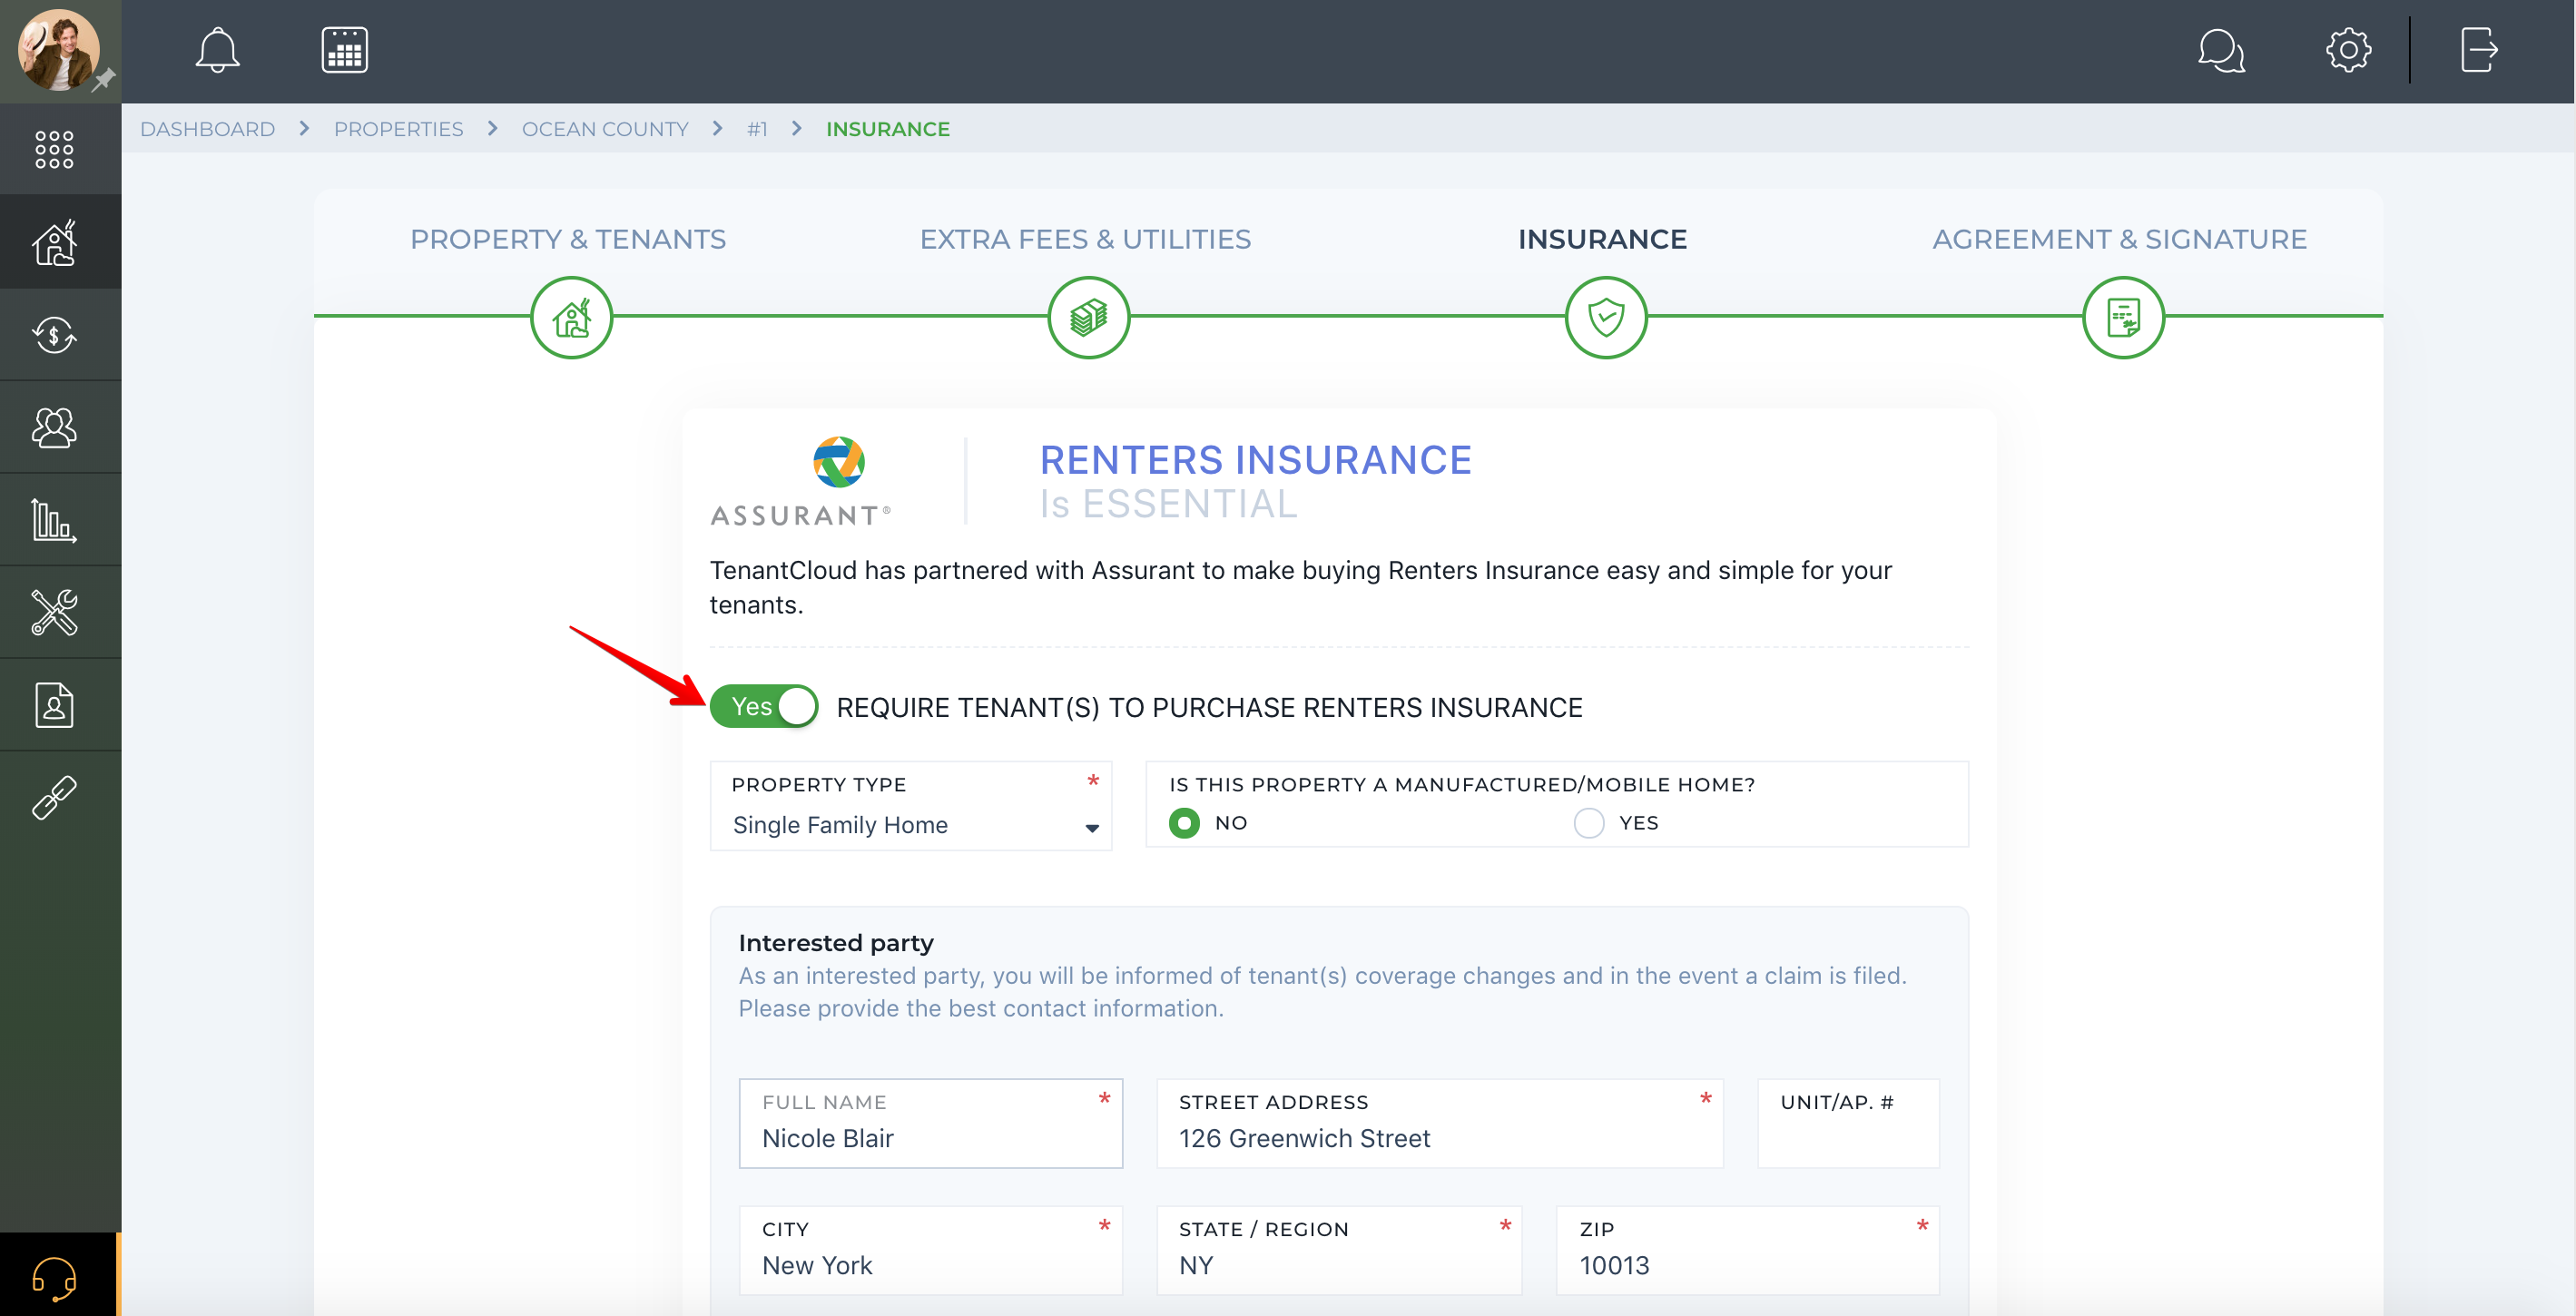 How to request Renters Insurance from tenants?